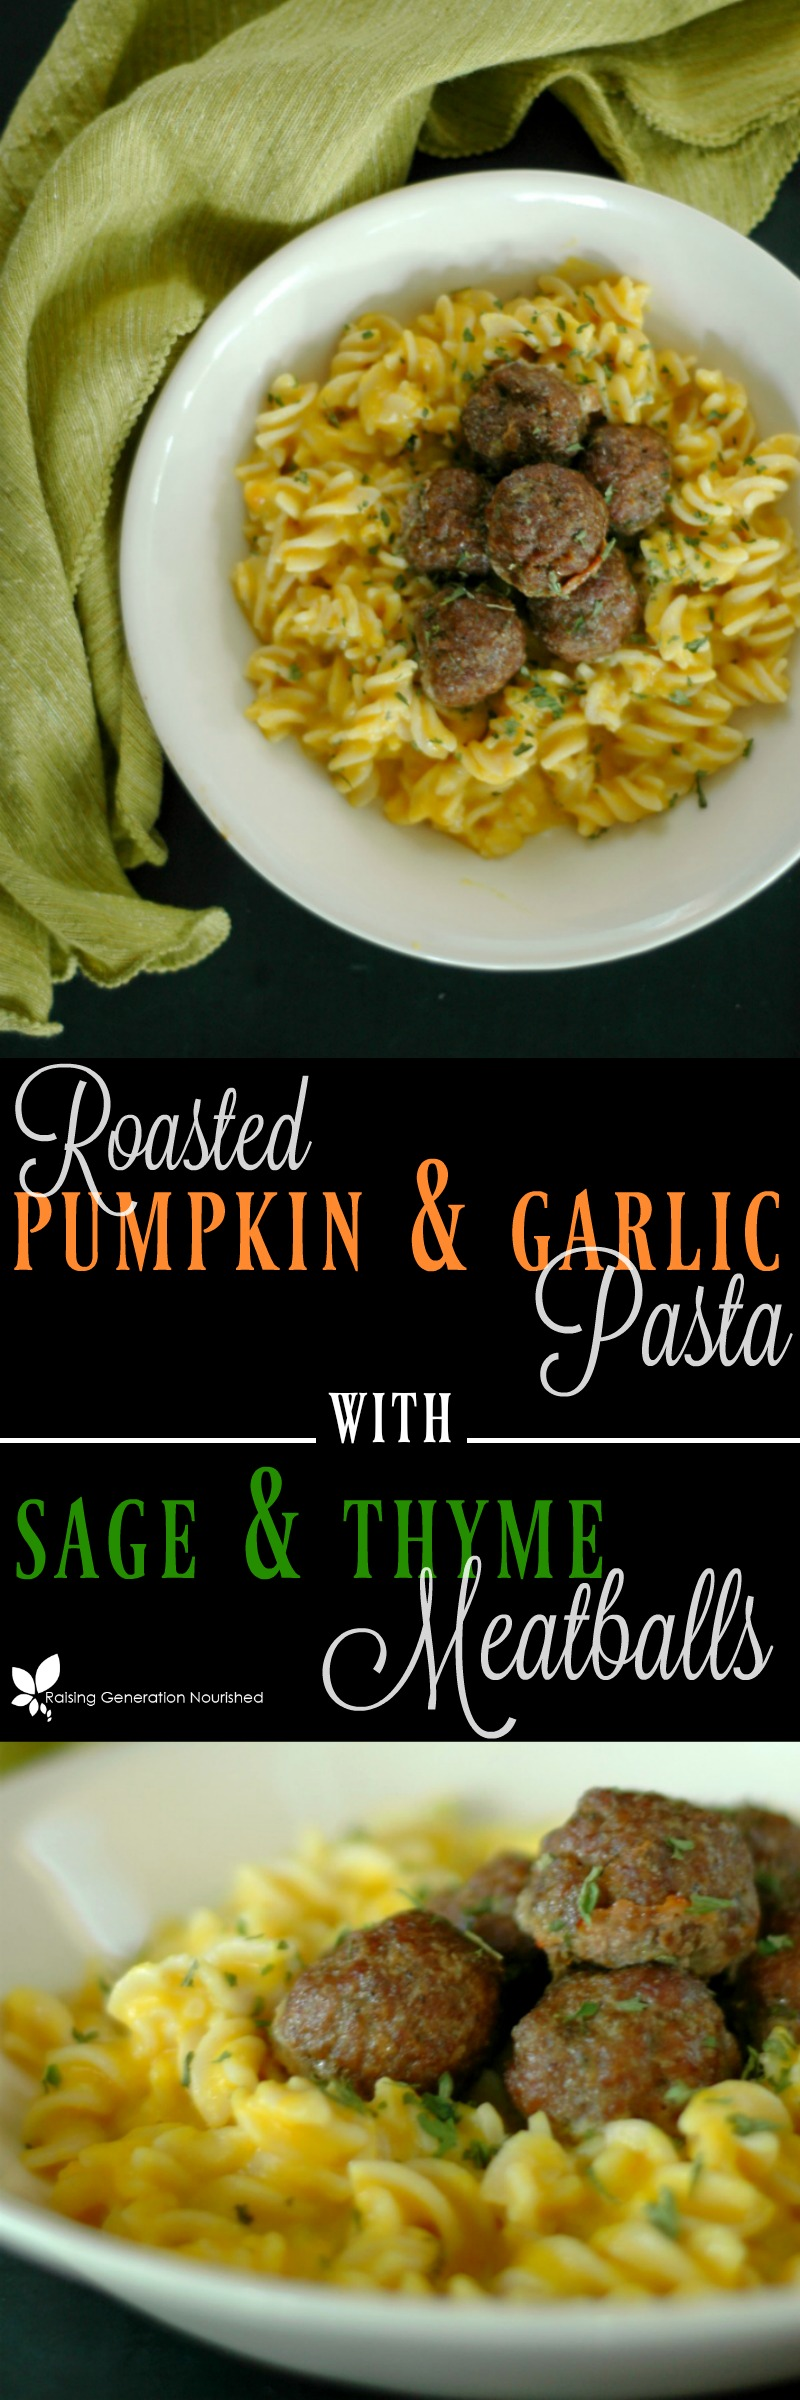 Roasted Pumpkin & Garlic Pasta with Sage & Thyme Meatballs ::Grab the wool socks and put a log on the fireplace! It's time to cozy up to some cool weather comfort food like roasted pumpkin and garlic pasta and enjoy the season!